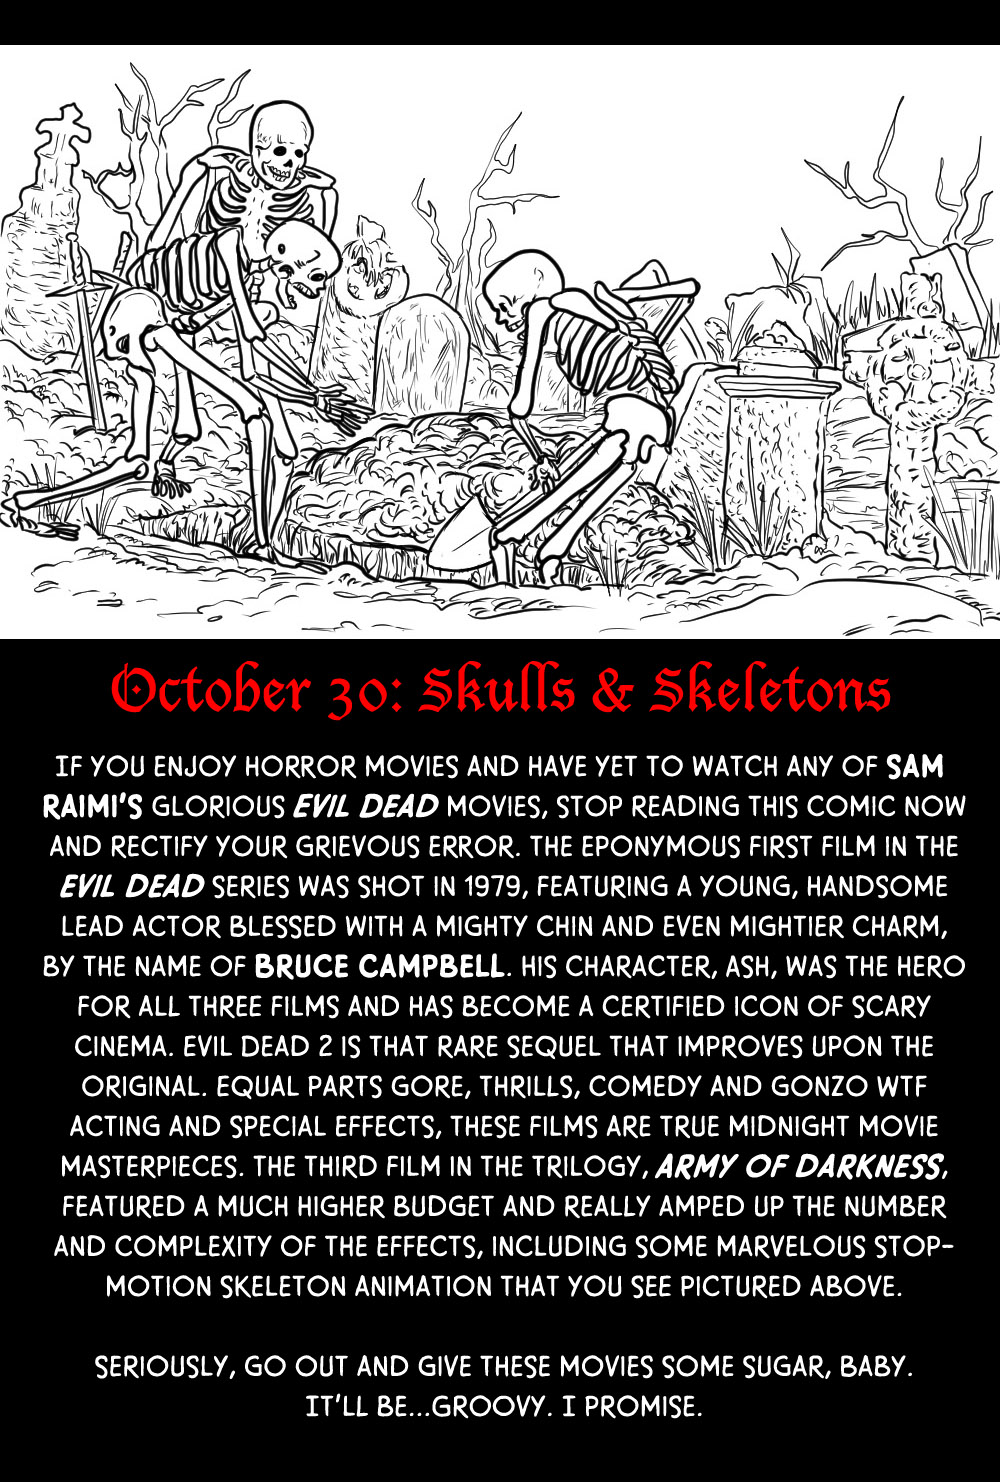 October 30: Skulls & Skeletons (& The Evil Dead)